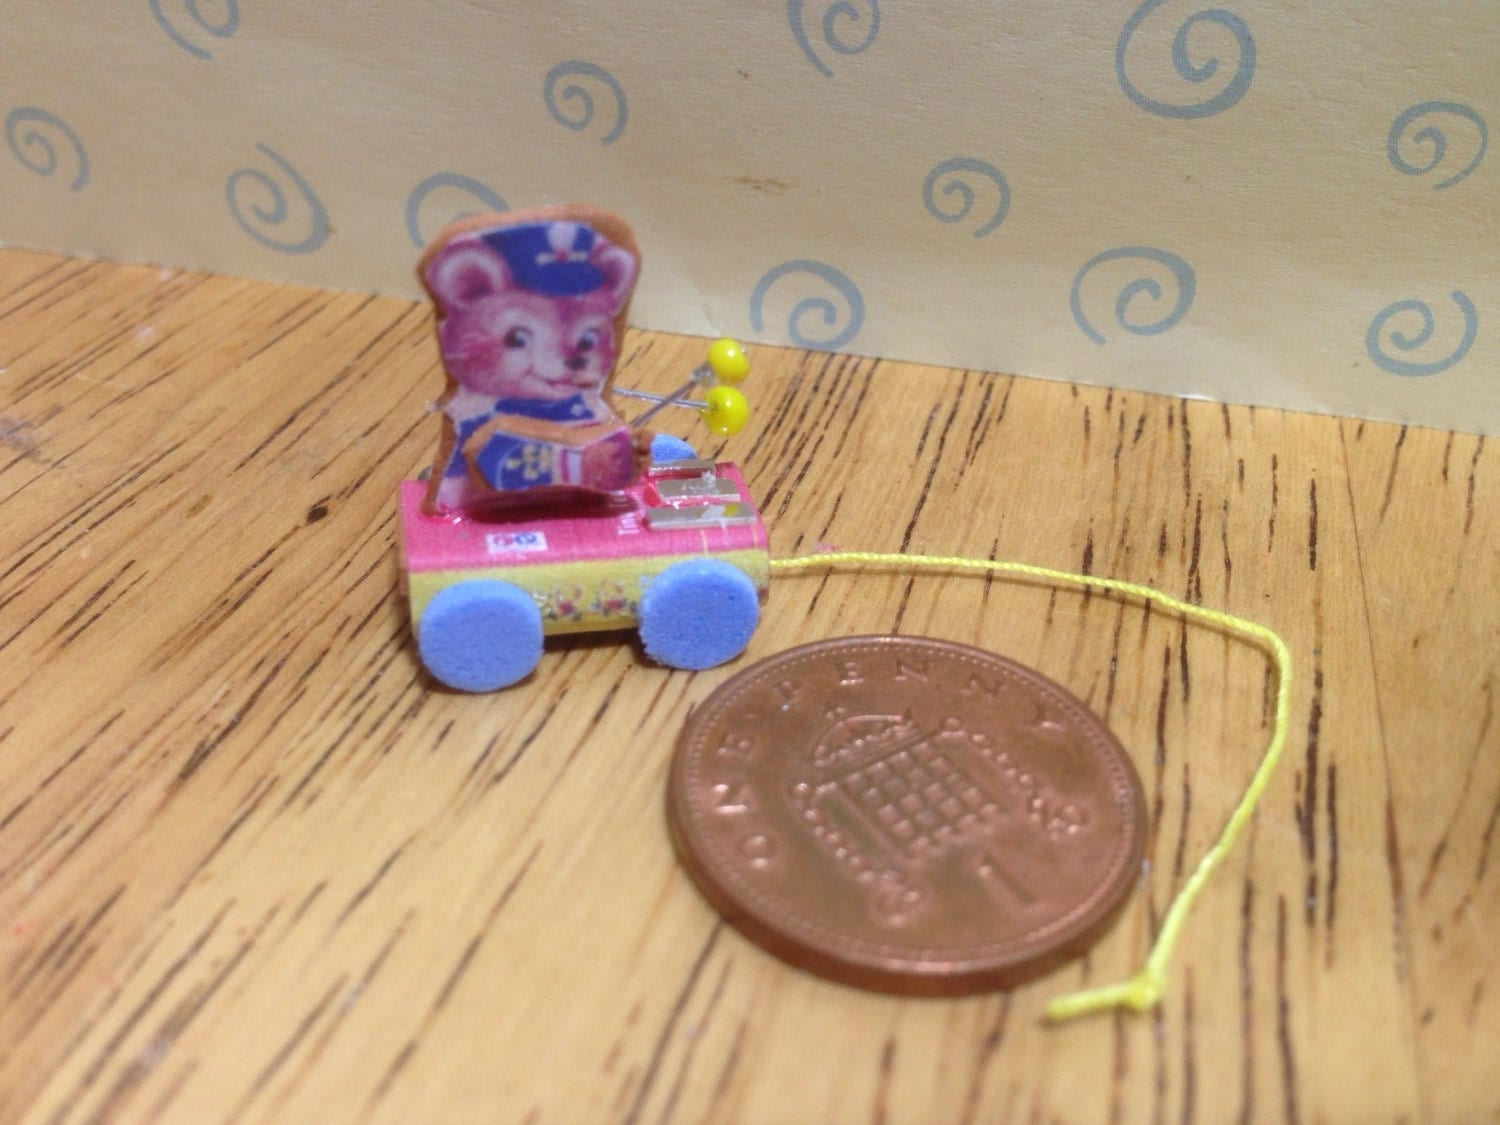 Hand made Dolls house Miniature replica vintage fisher price pull along teddy xylophone 112 scale